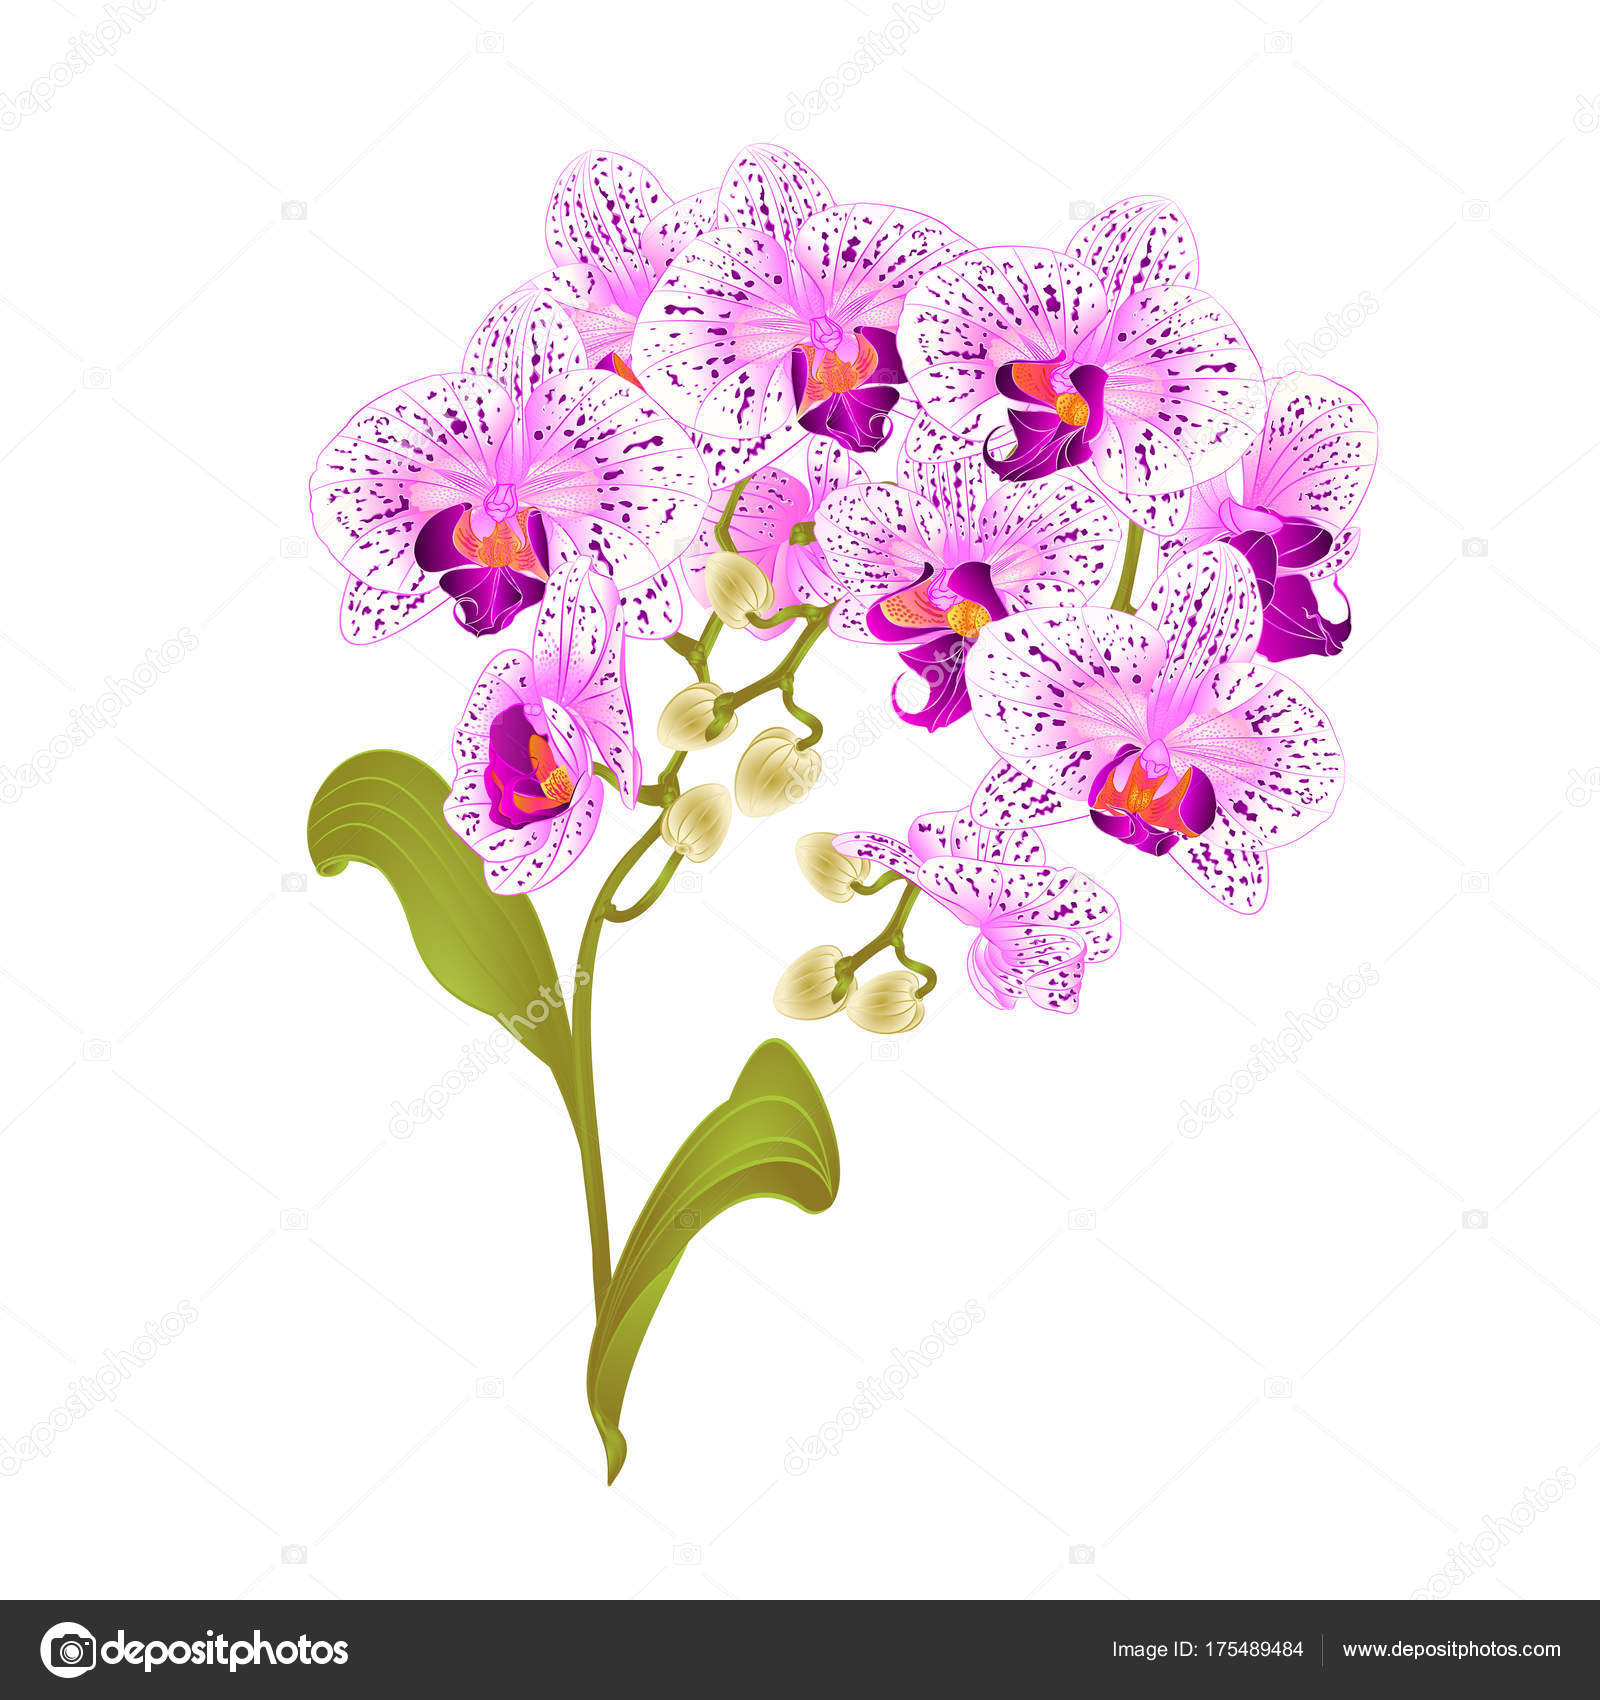 Branches orchid phalaenopsis purple white flowers tropical plants branches orchid phalaenopsis purple and white flowers tropical plants green stem and buds and leaves vintage vector botanical illustration for design mightylinksfo